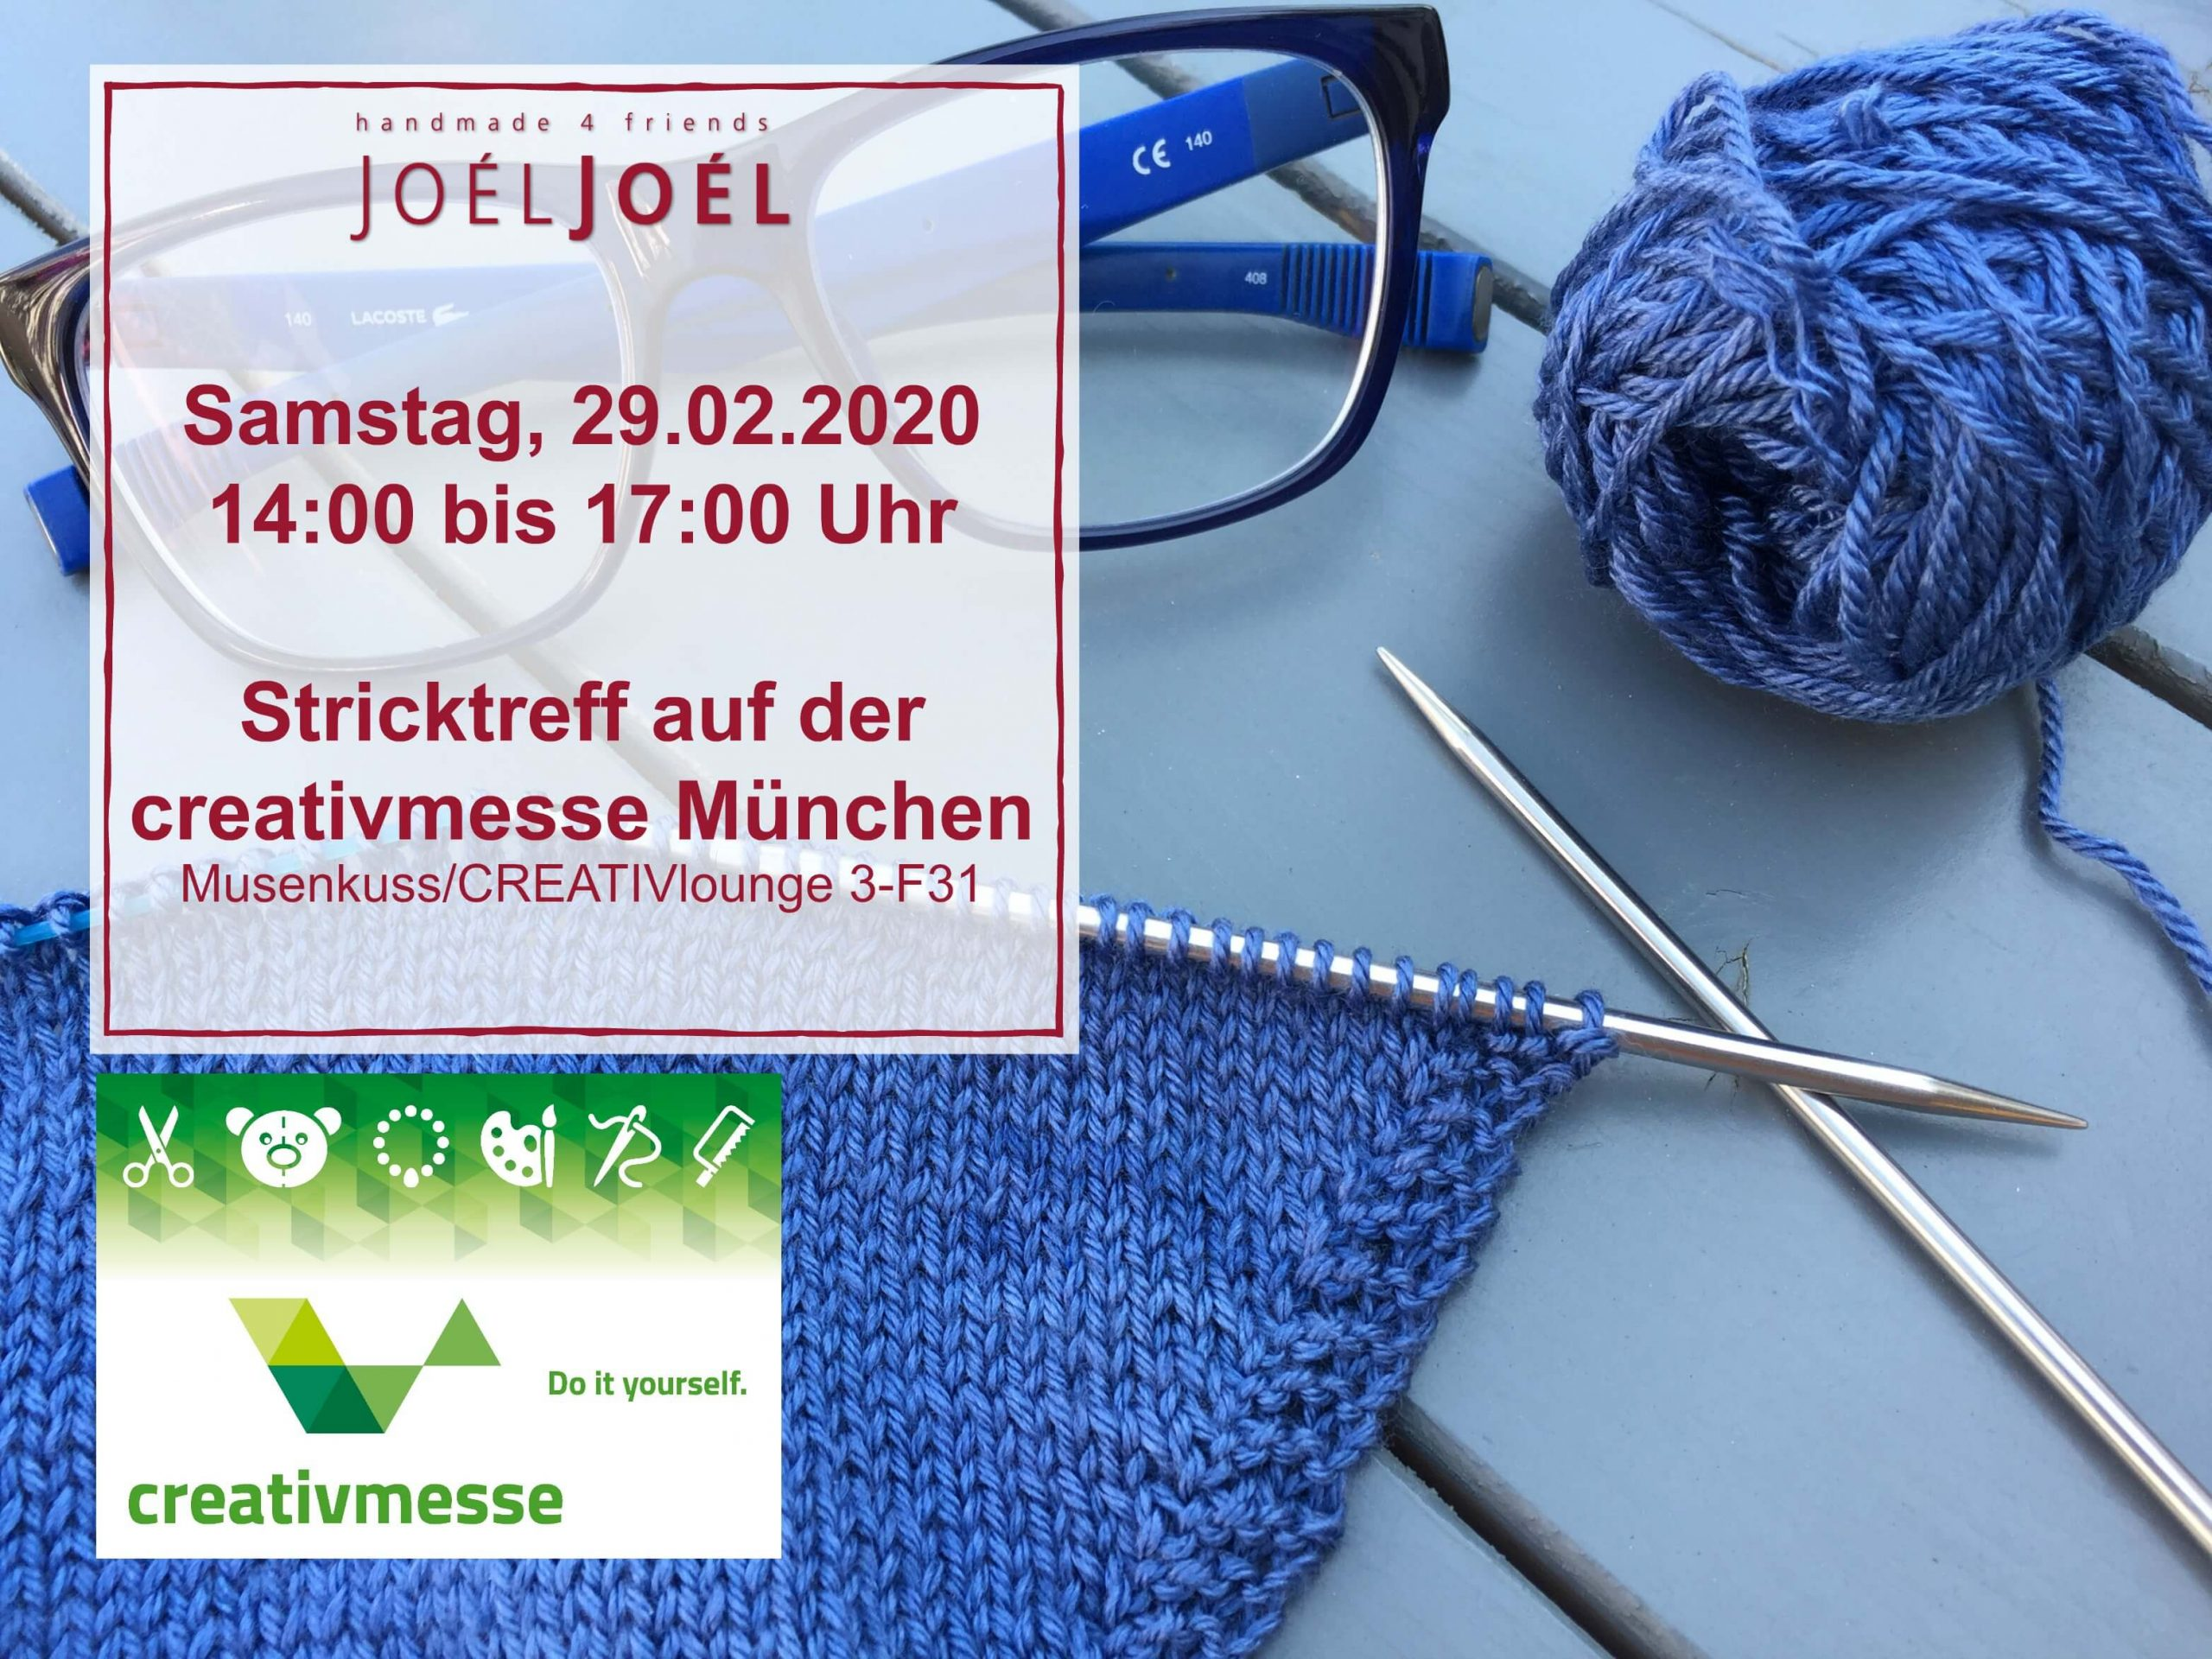 Stricktreff, creativmesse, stricken, Wolle